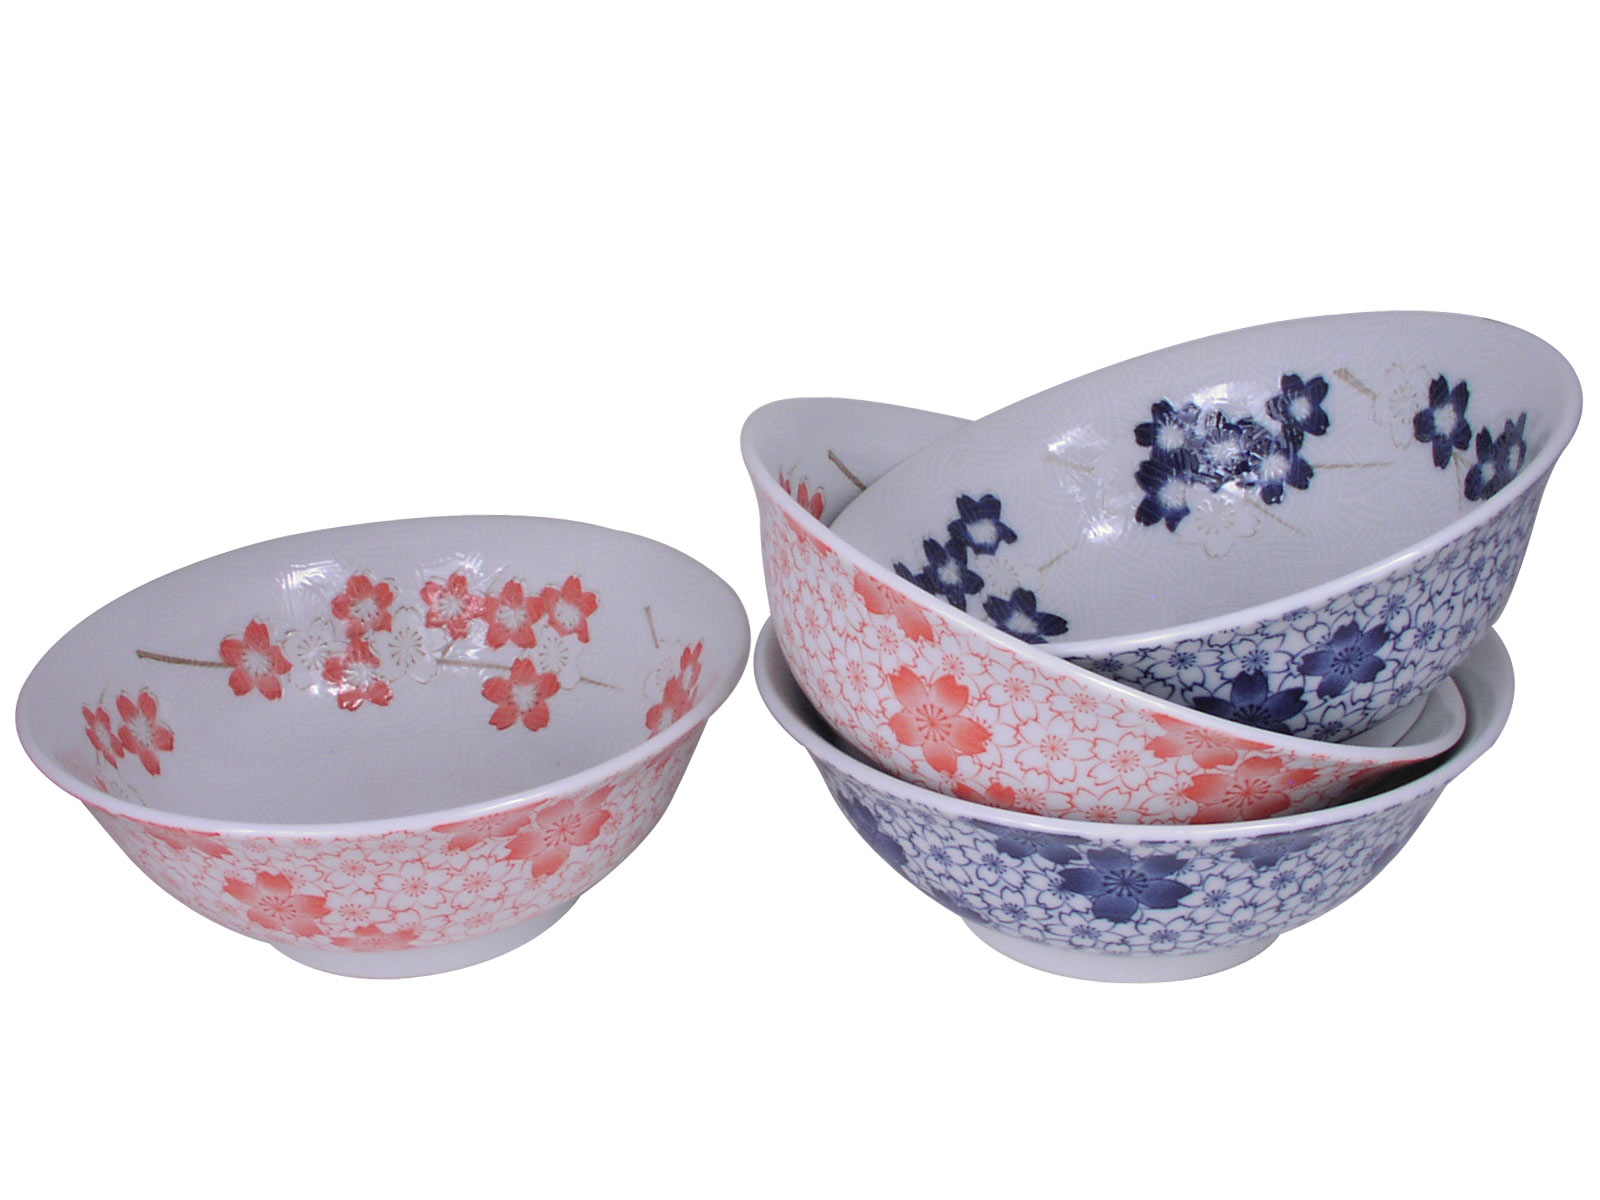 Peachy Pink and Dark Blue Cherry Blossom Dinnerware Ceramic Noodle Bowl Set for Four  sc 1 st  Mrs. Linu0027s Kitchen & Peachy Pink and Dark Blue Cherry Blossom Dinnerware Ceramic Noodle ...